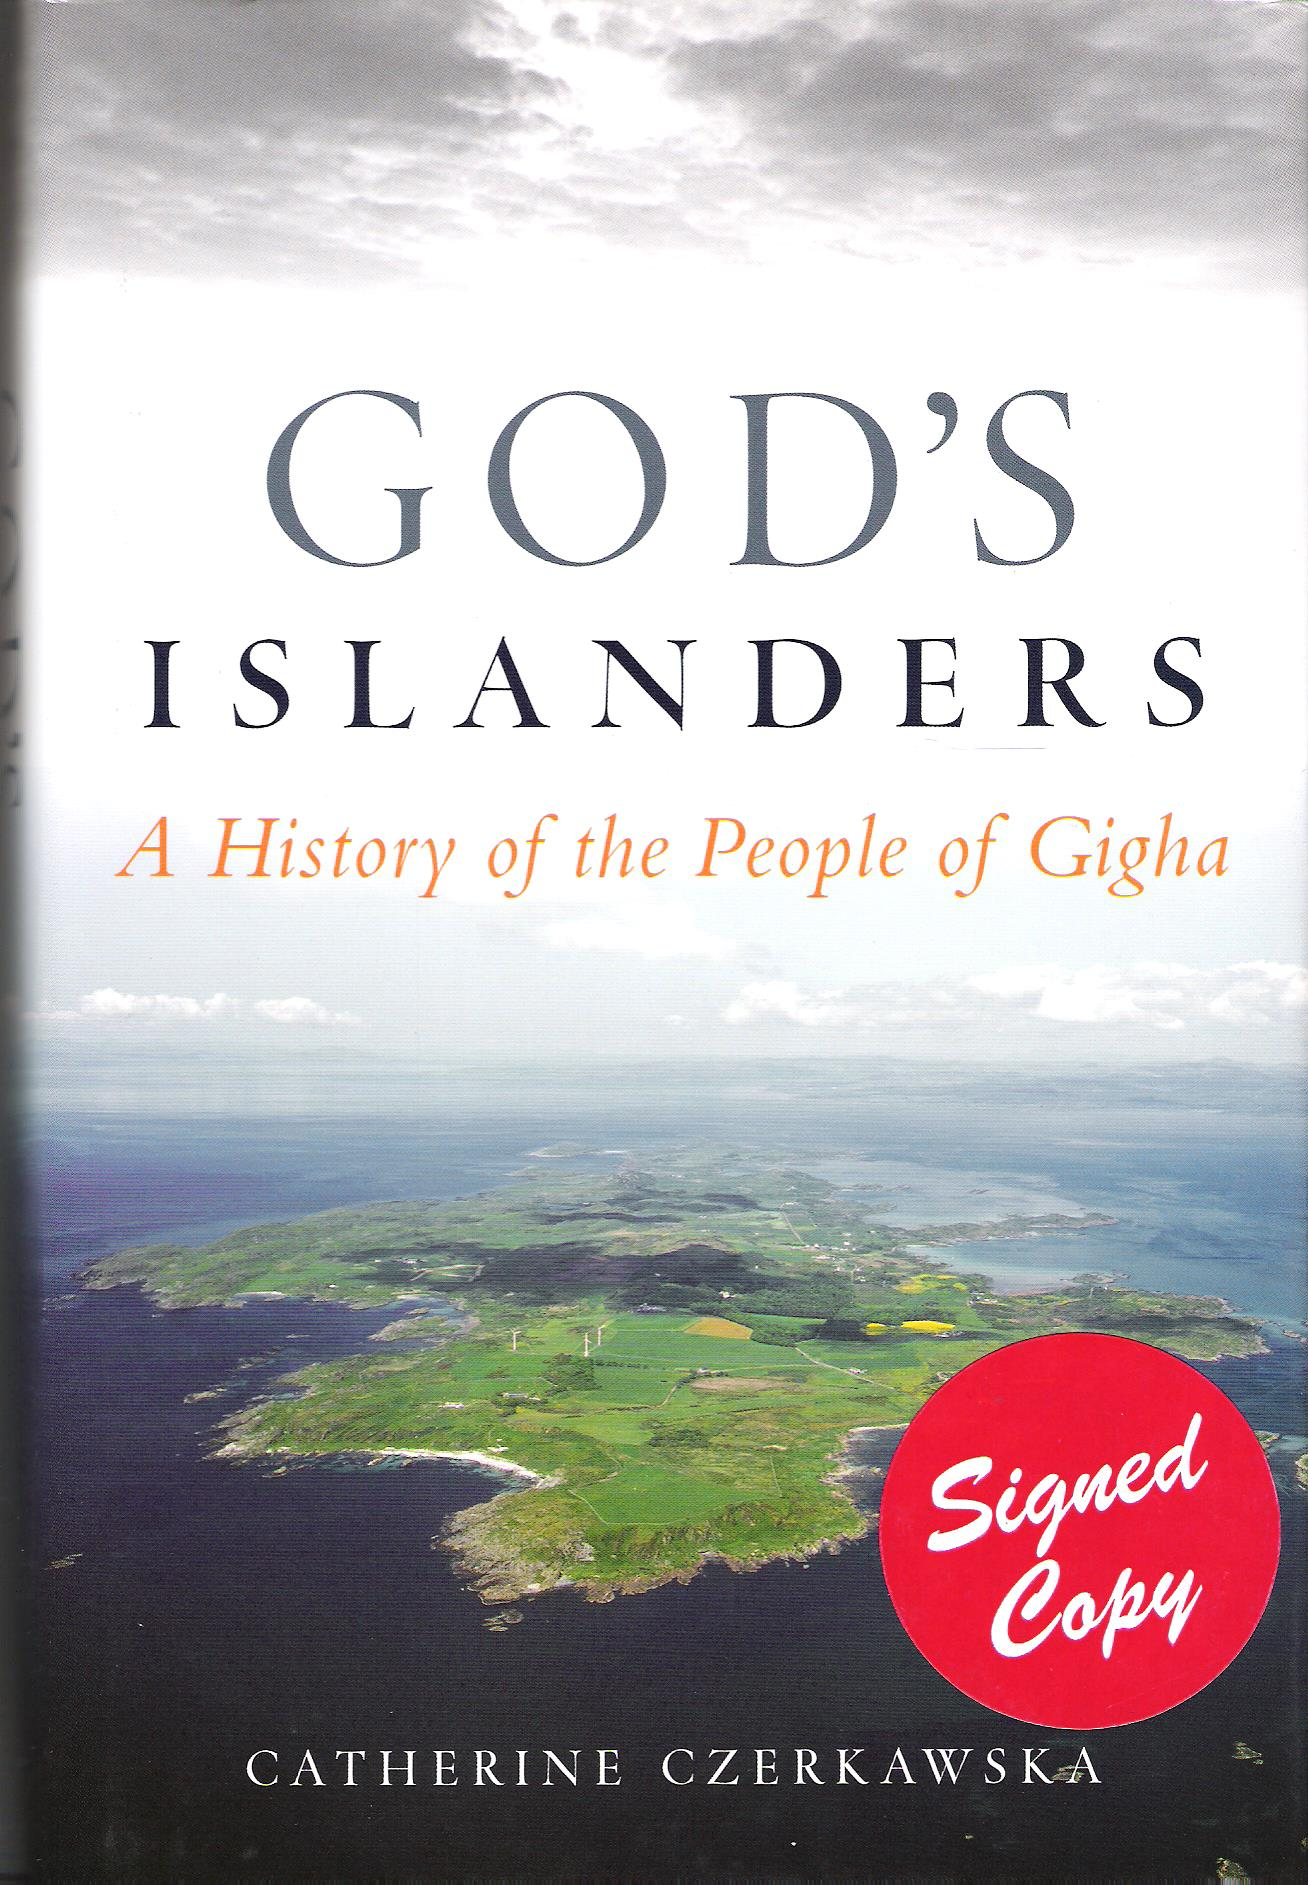 Image for God's Islanders: A History of the People of Gigha.